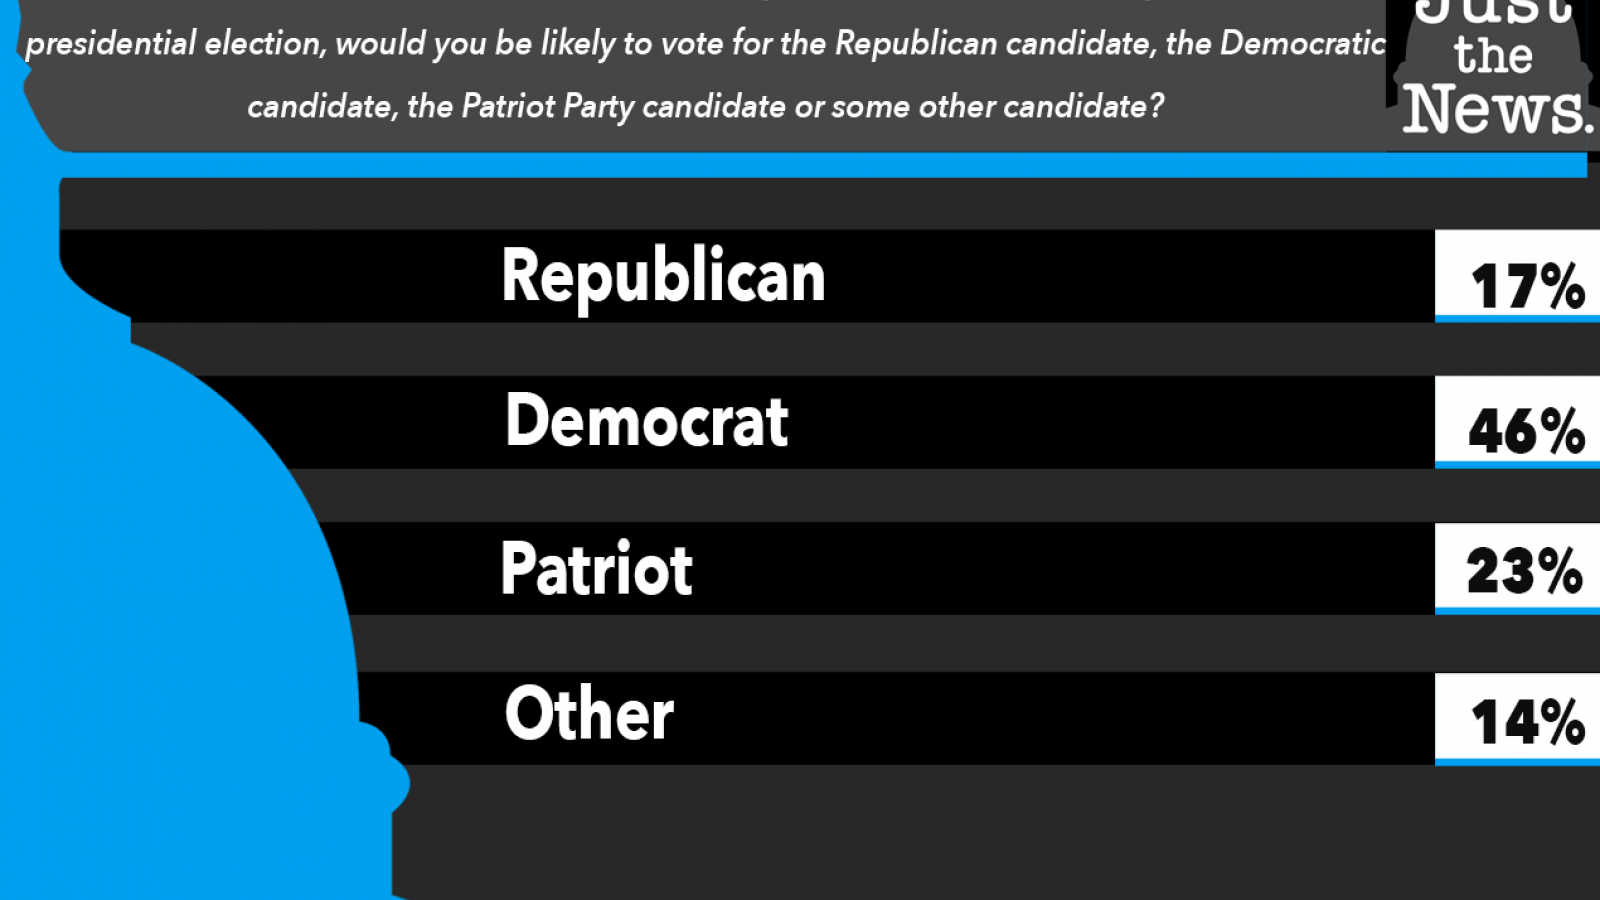 Just the News Poll, Republican, Patriot Party or Democrat